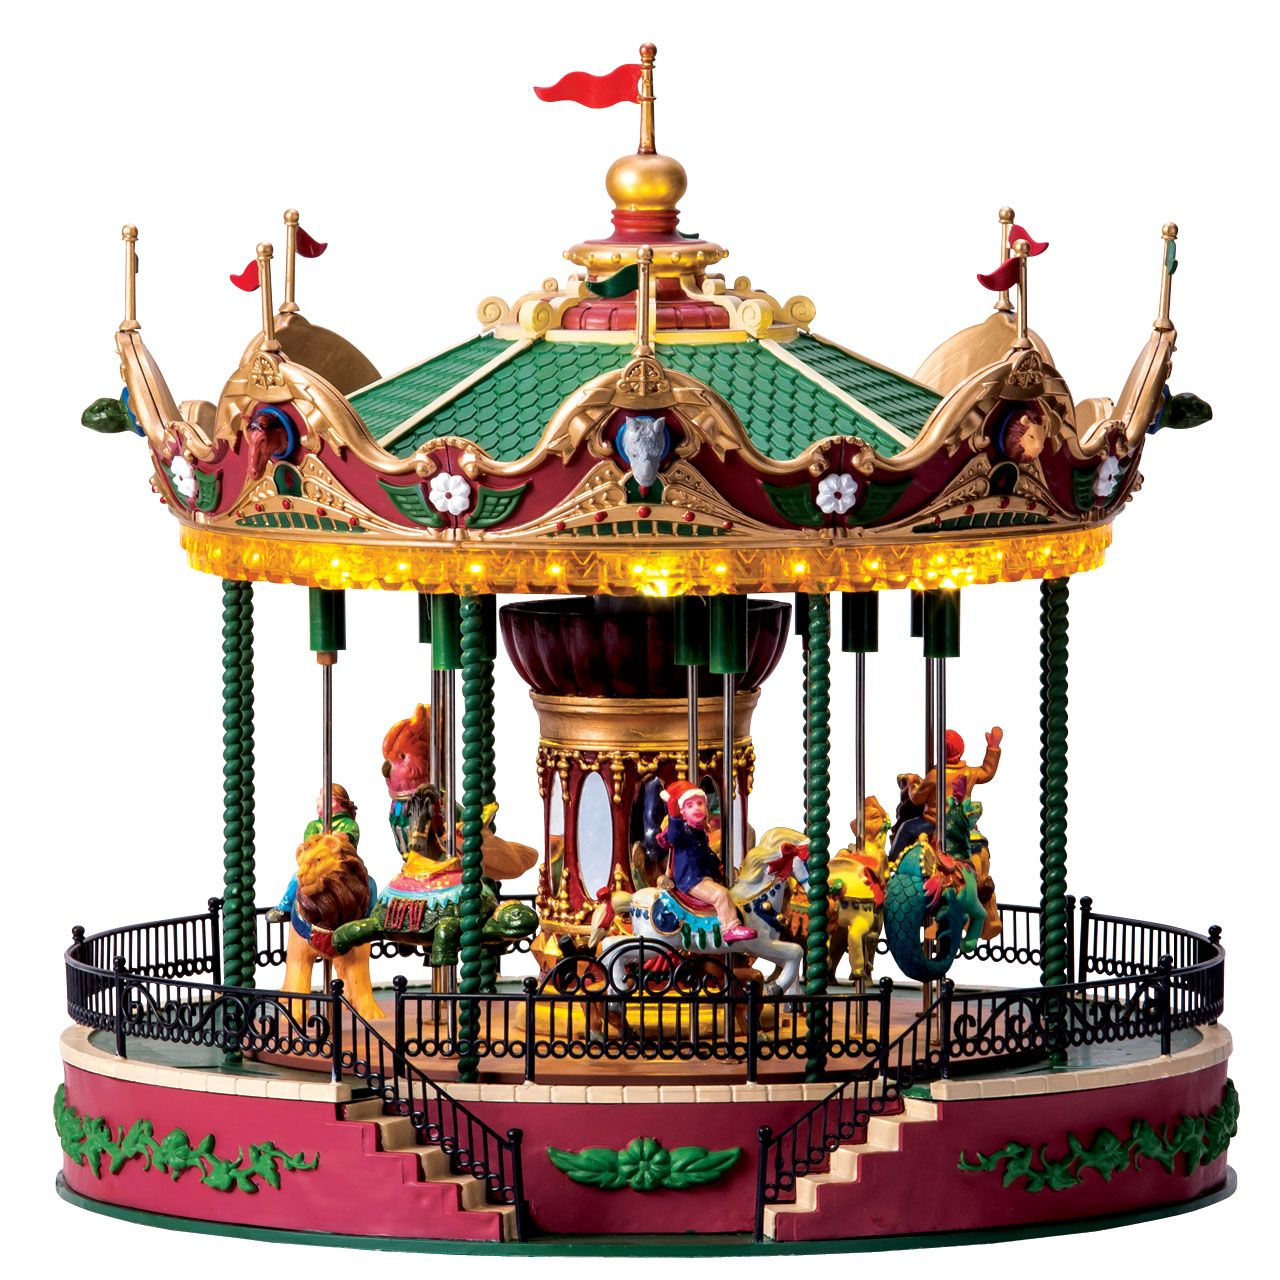 Lemax Jungle Carousel Sku 64155 64151 Is A New 2016